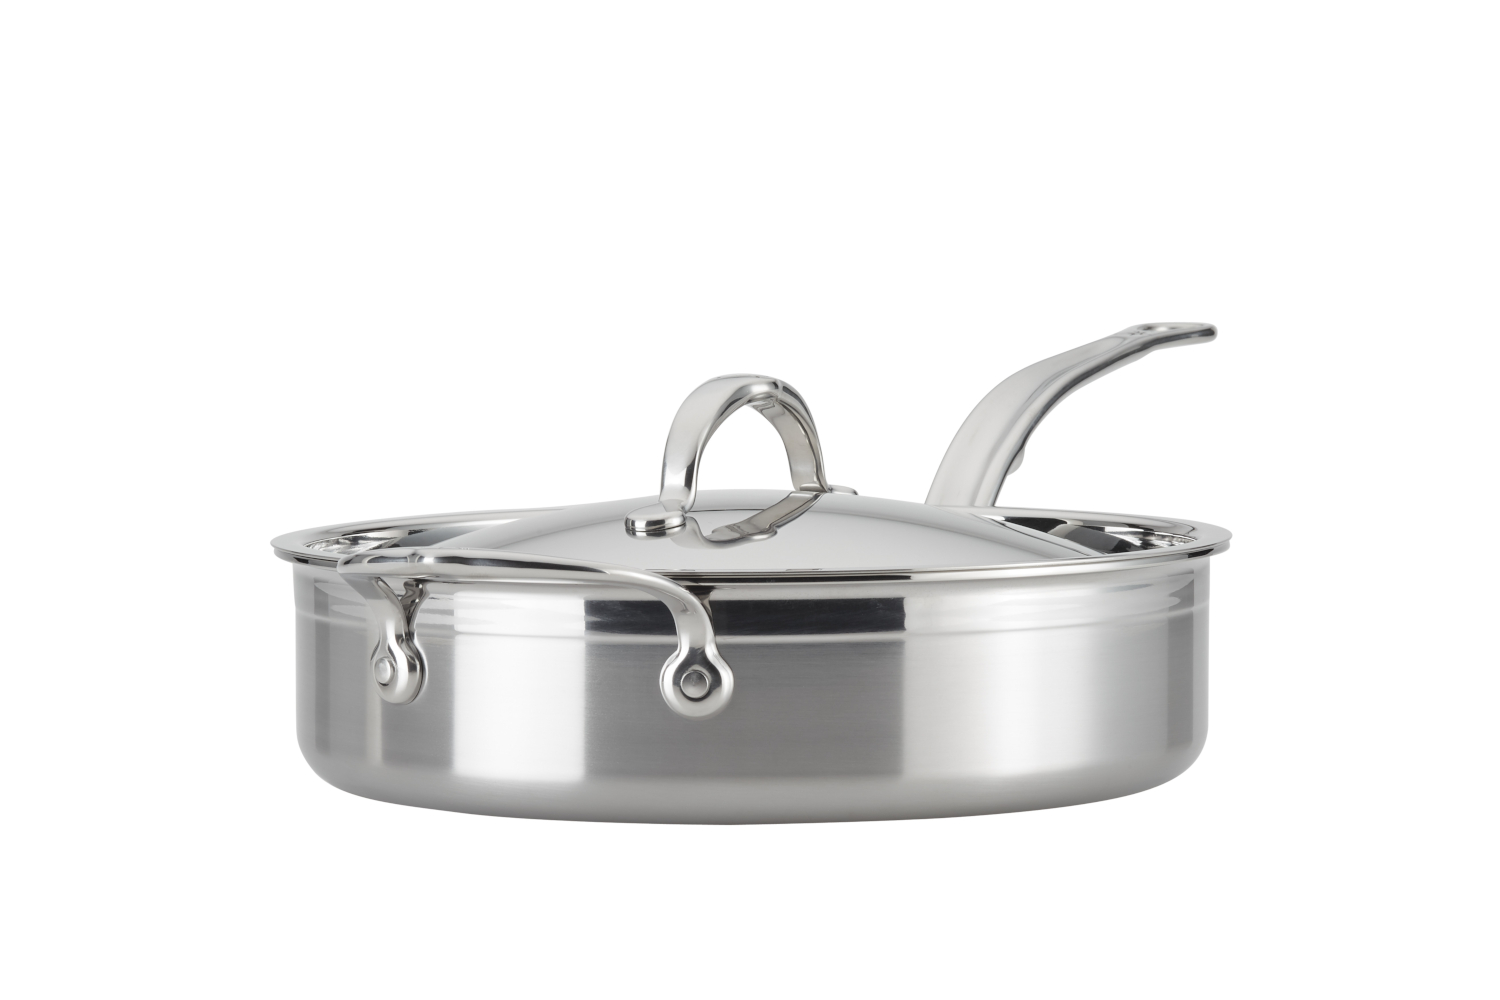 Hestan ProBond Forged Stainless Steel 3 1/2 qt. Saute Pan w/Lid